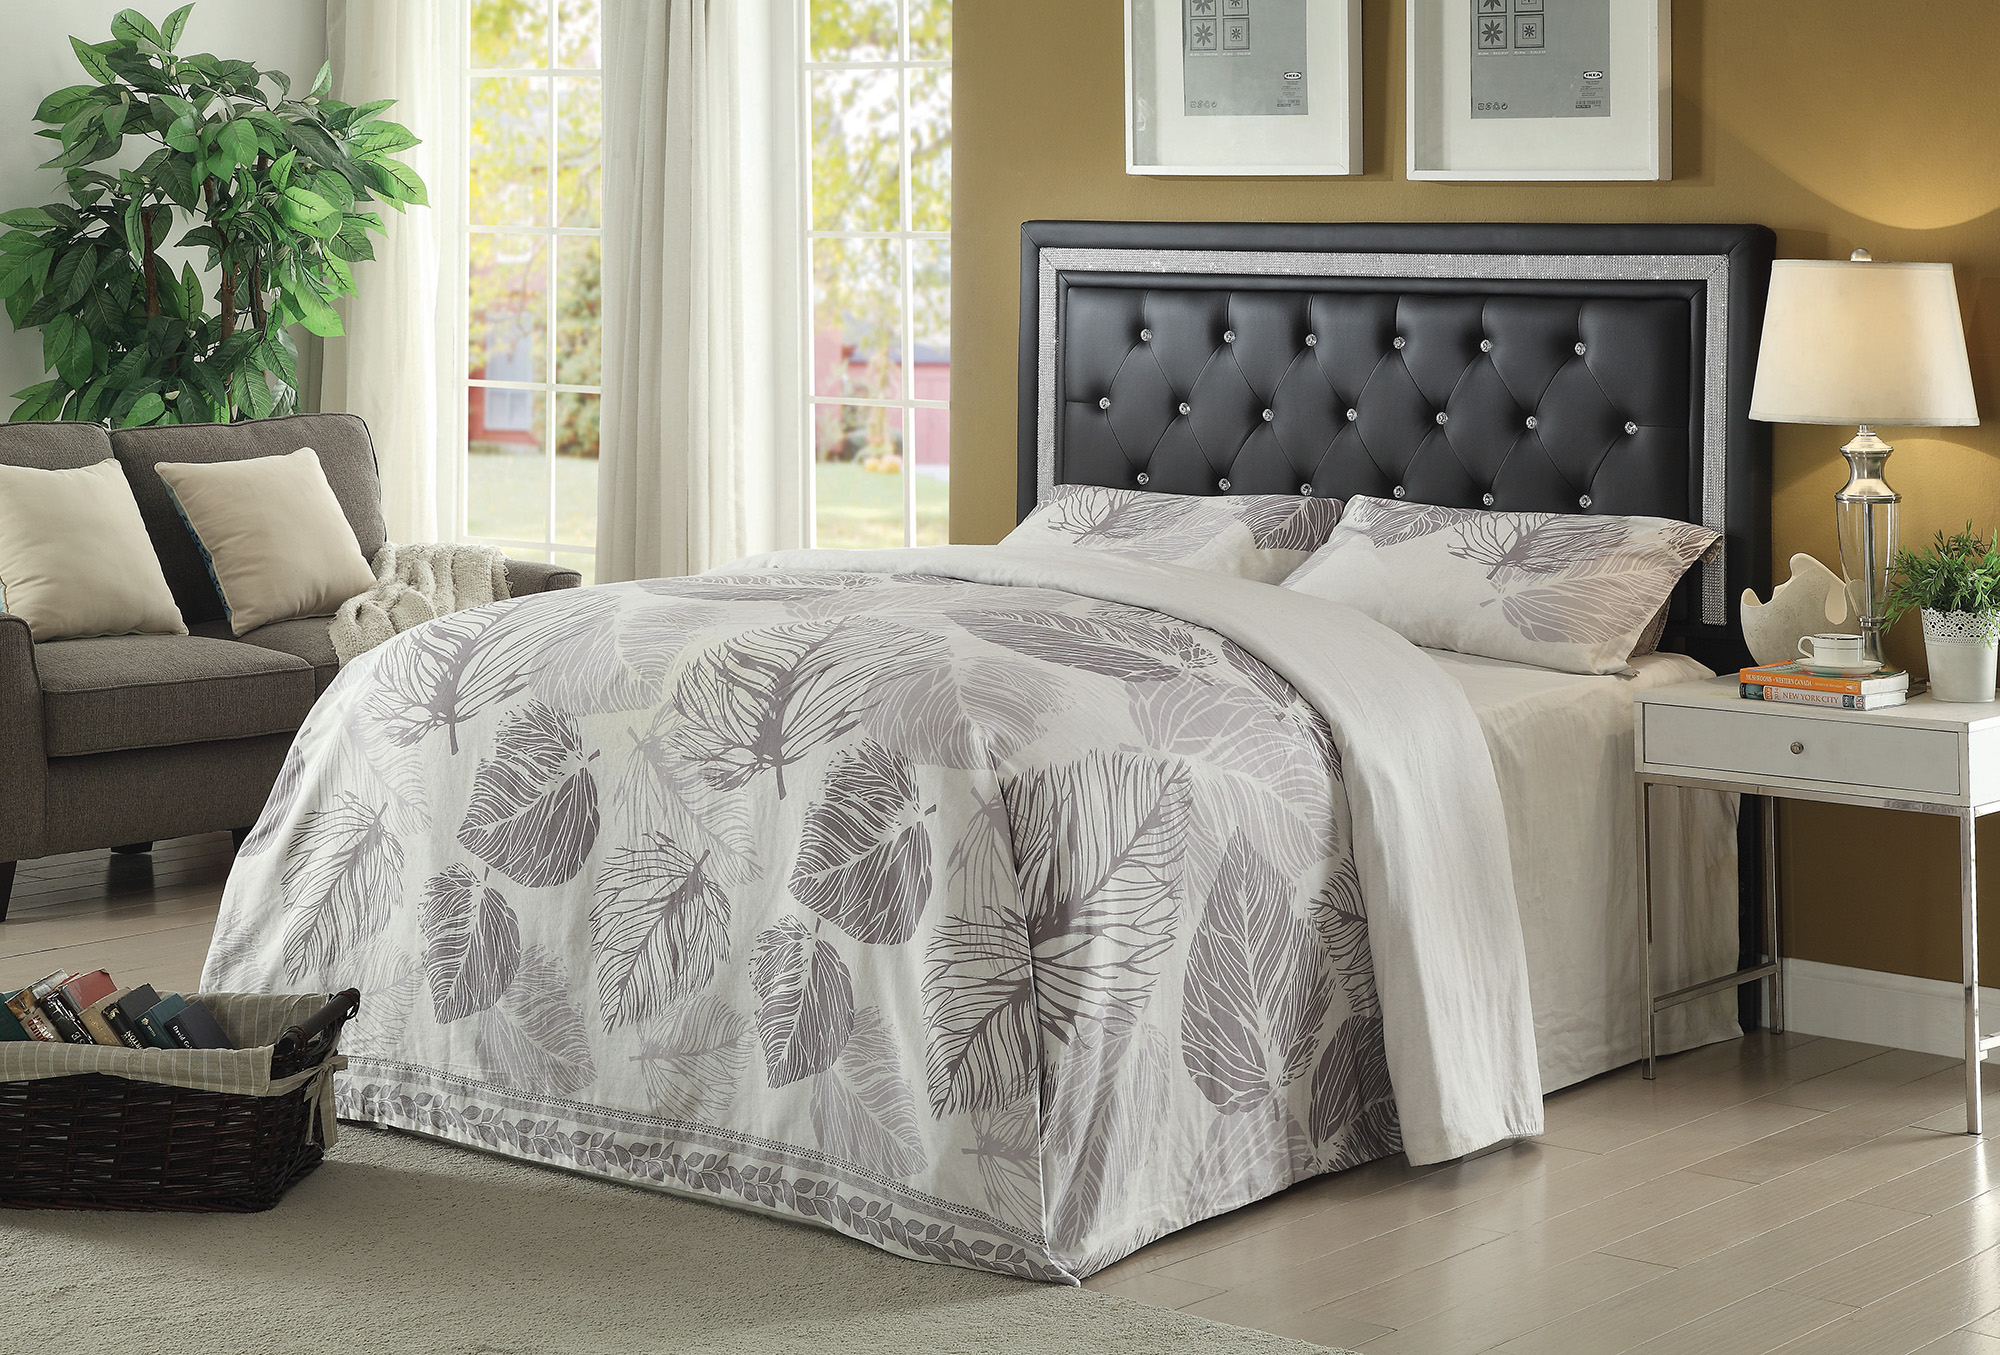 Queen Full Andenne Glamorous Contemporary Headboard